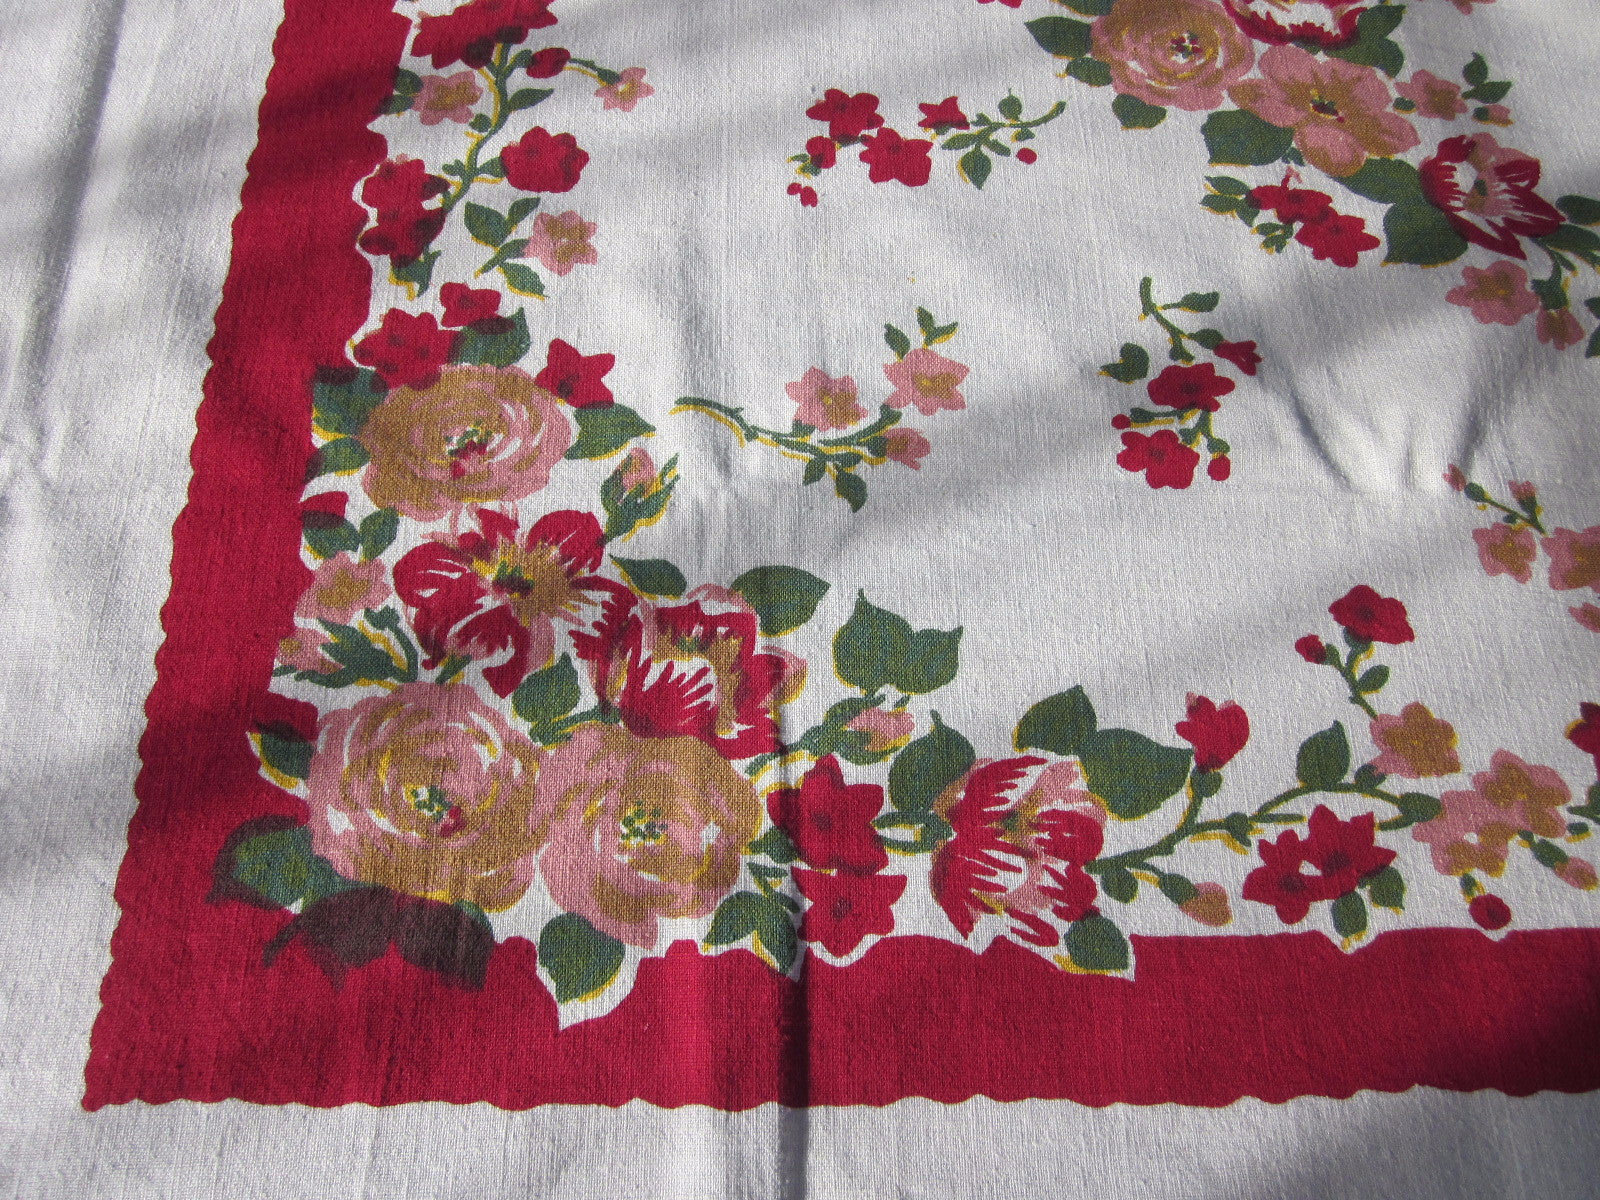 Large Smudgy Roses on Red Floral Vintage Printed Tablecloth (65 X 57)